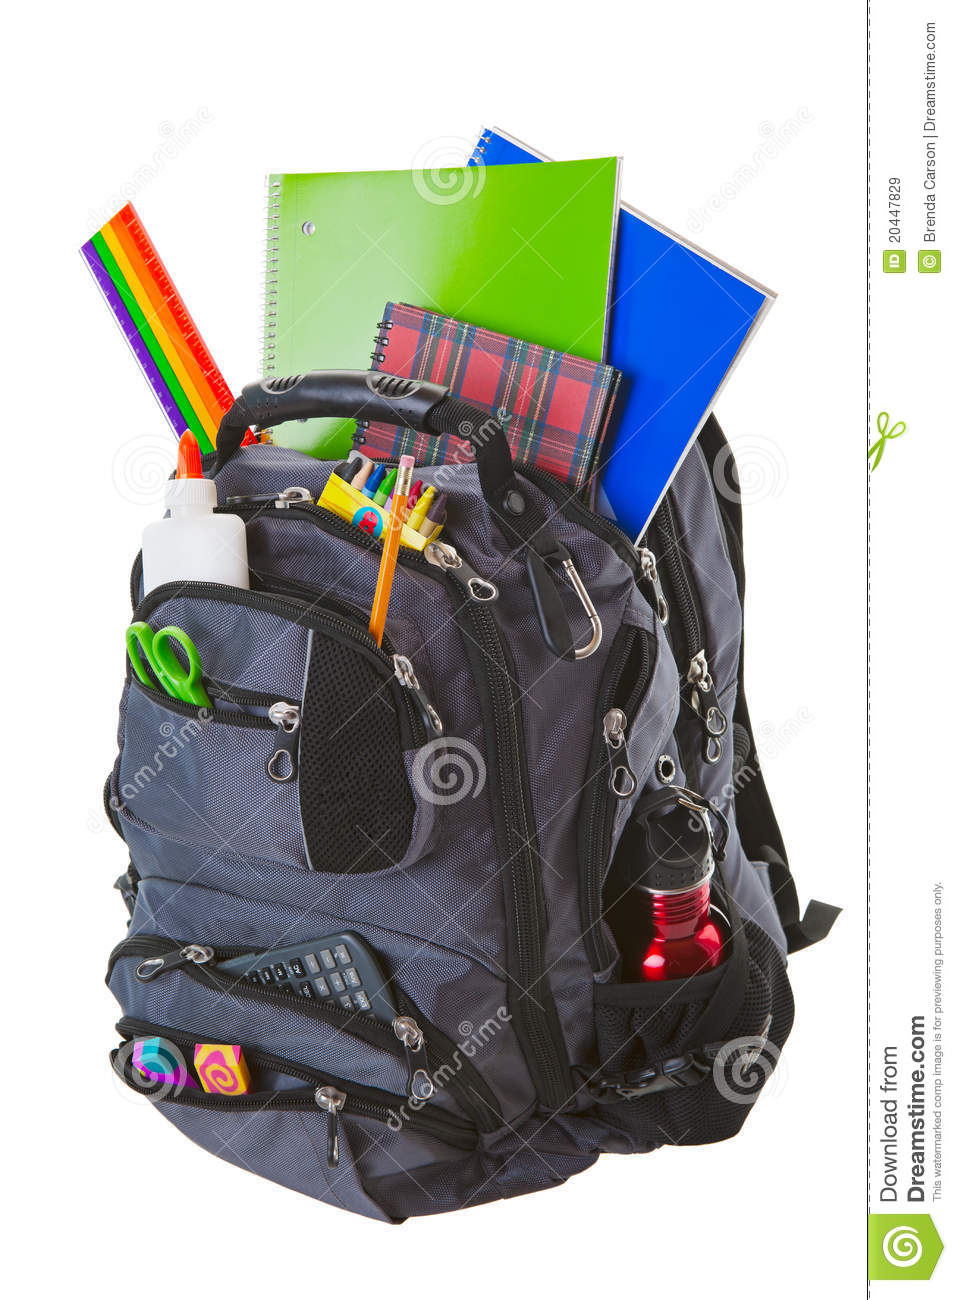 More similar stock images of ` Backpack With School Supplies `